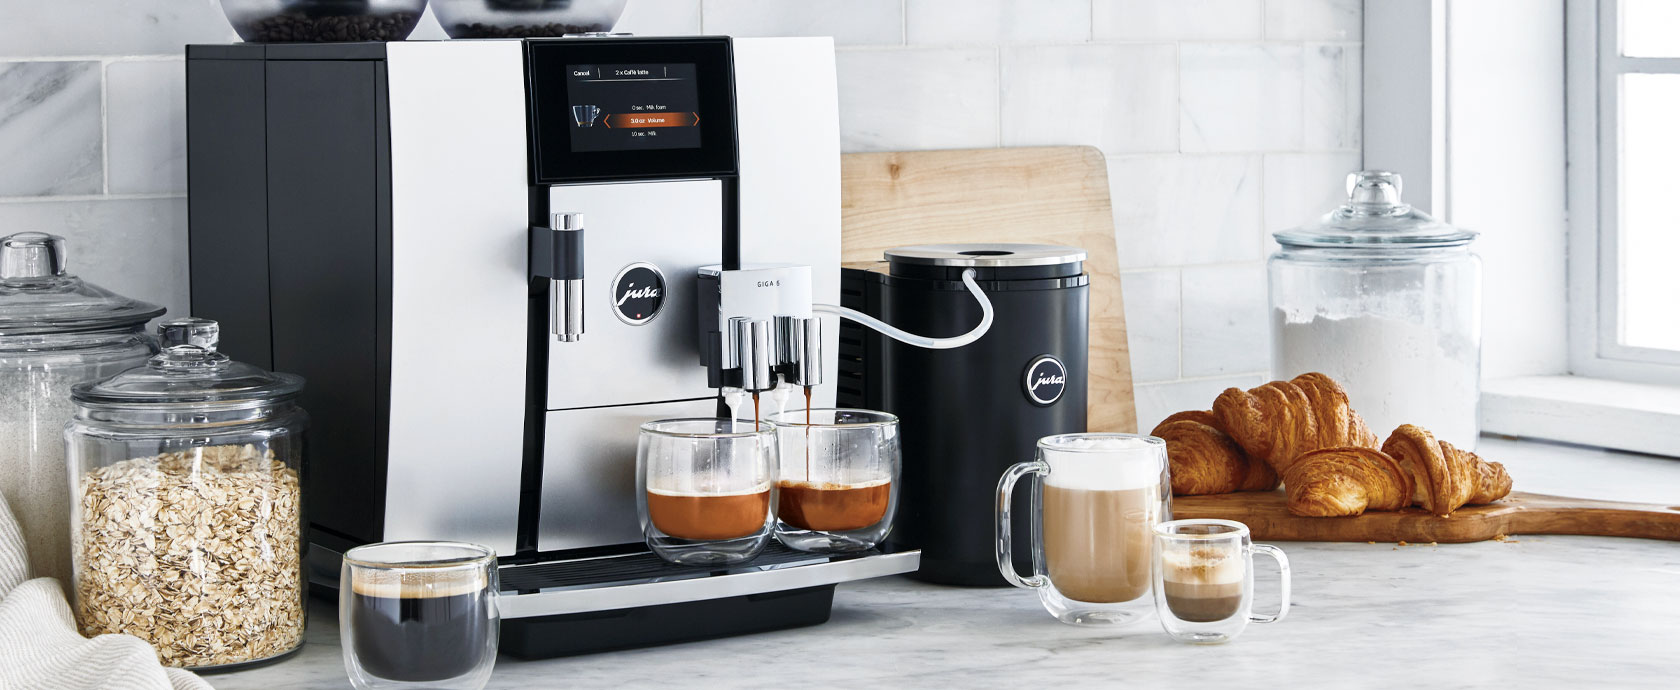 Jura Giga coffee and espresso machine